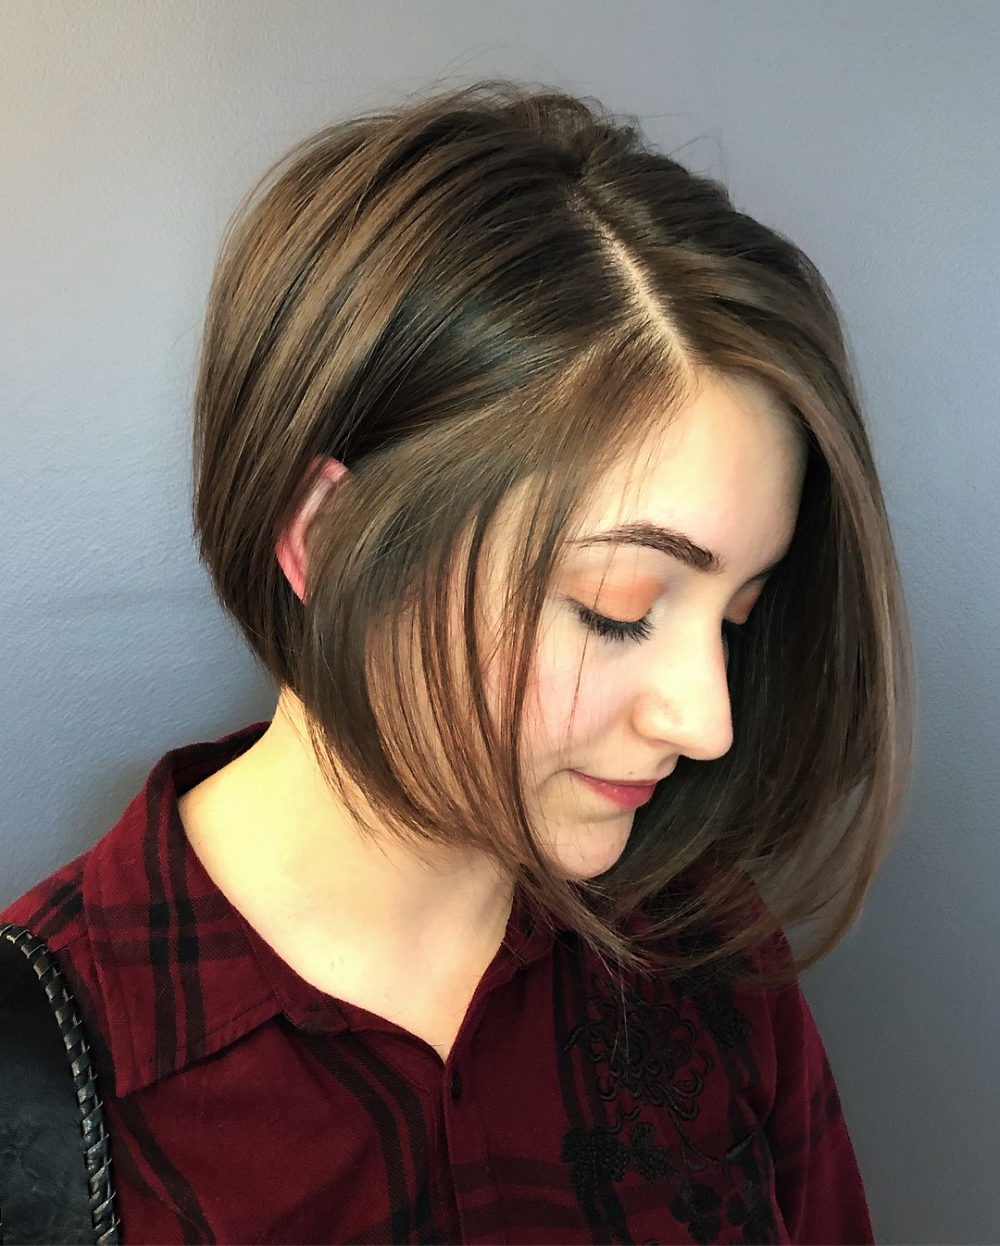 33 Flattering Short Hairstyles For Round Faces In 2018 Throughout Short Haircuts For Round Faces Black Hair (View 4 of 25)